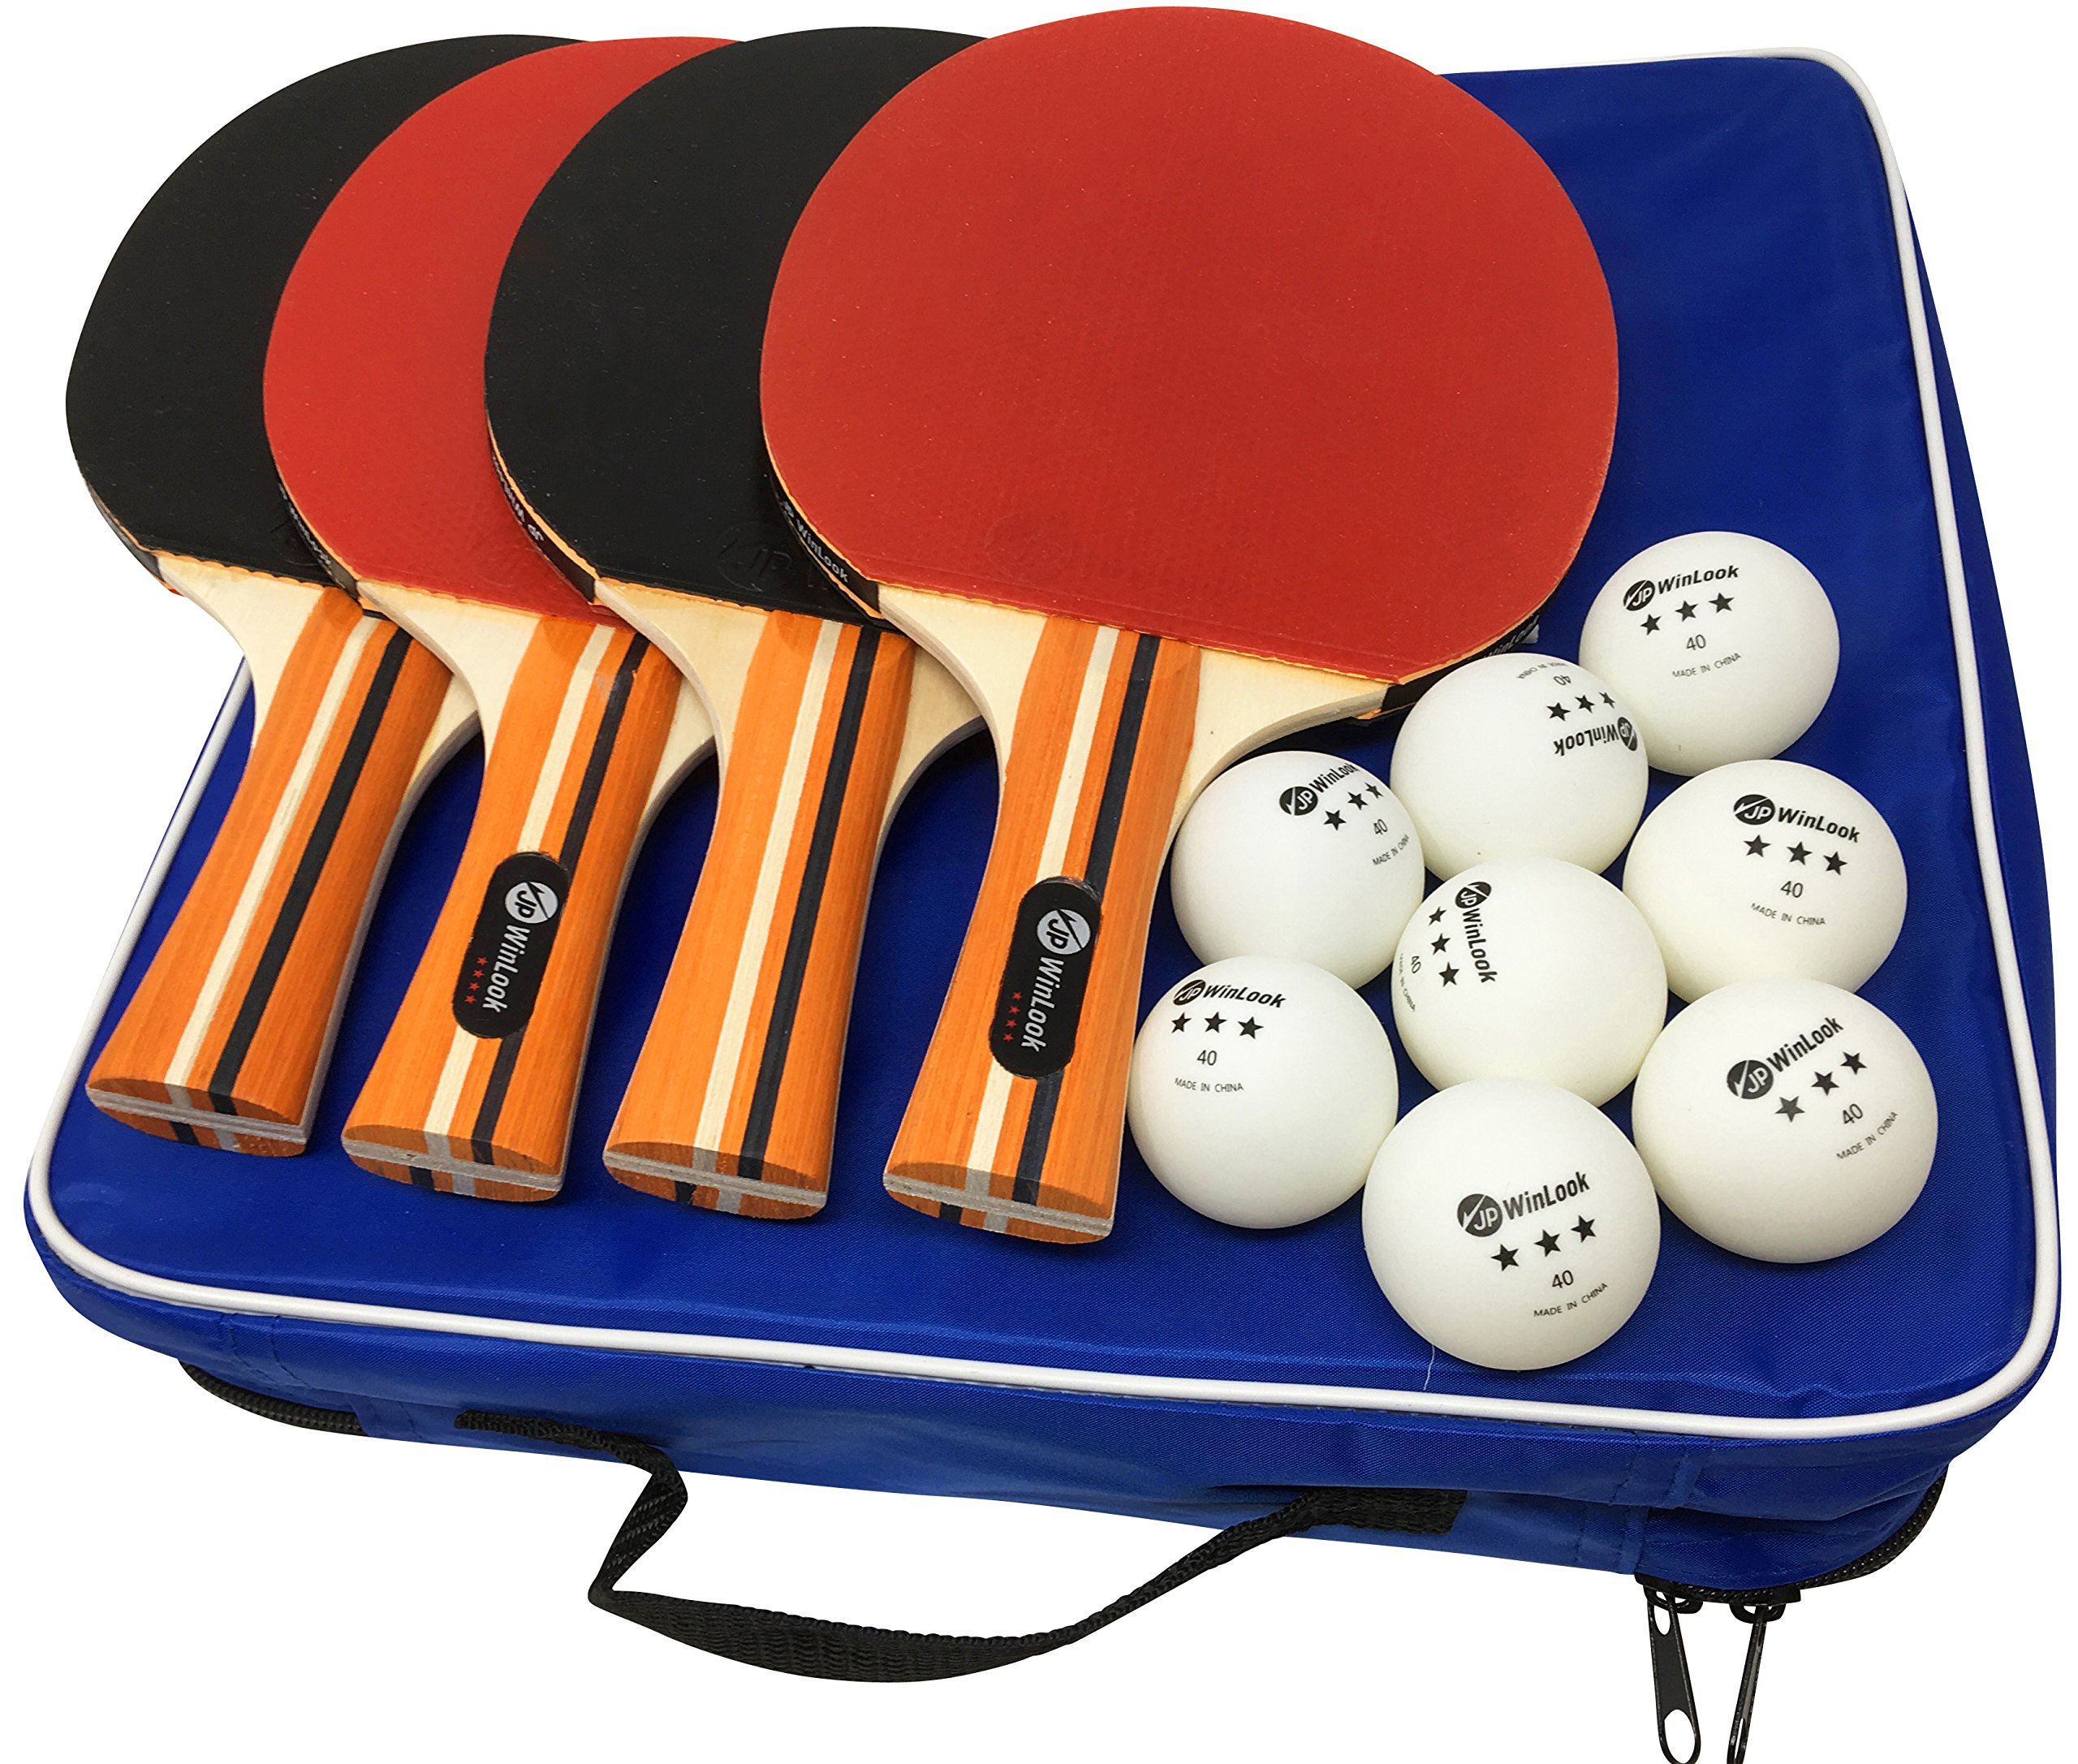 JP WinLook Ping Pong Paddle - 4 Pack Pro Premium Table Tennis Racket Set, 8 Professional Game Balls, Spin Rubber Bat, Training/recreational Racquet Kit, Accessories Bundle Portable Cover Case Bag by JP WinLook